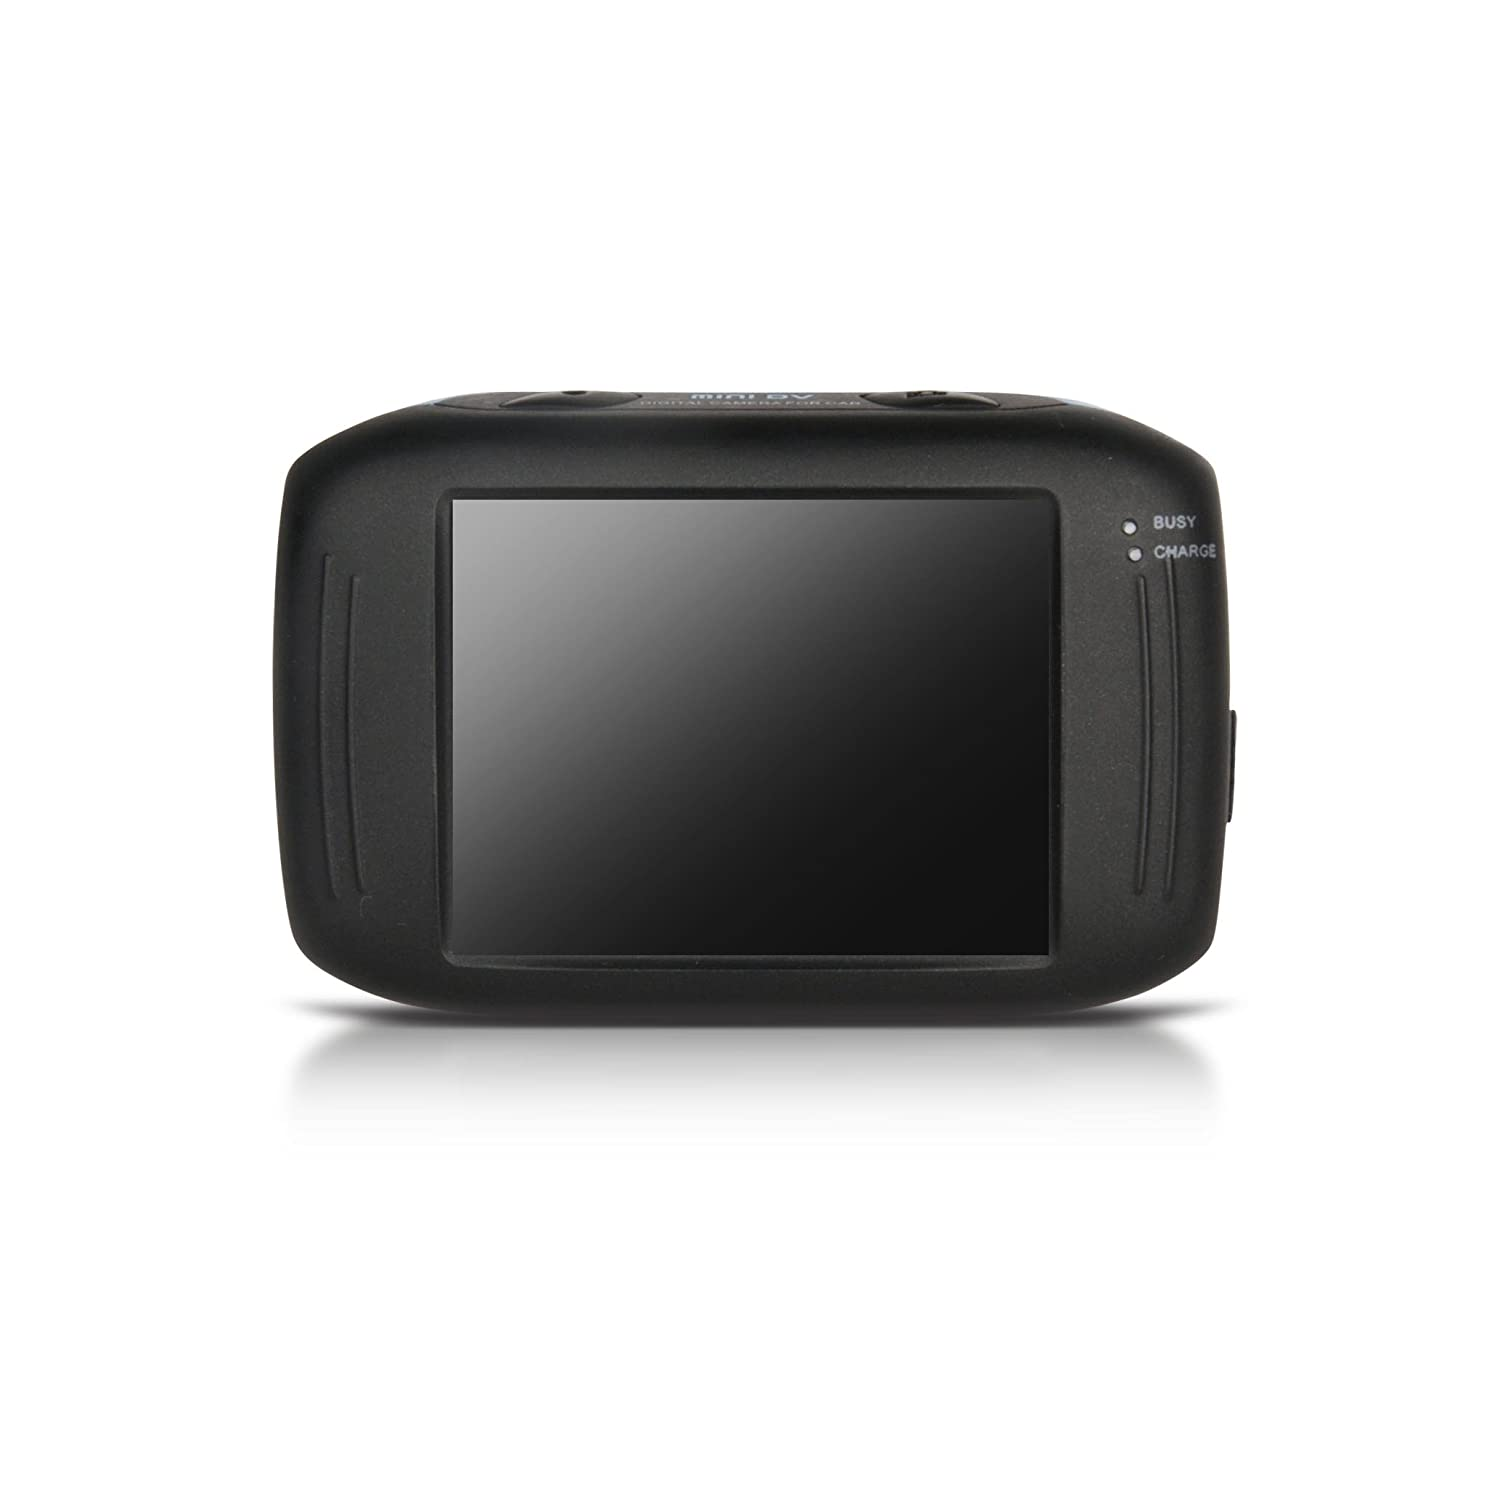 Blurfix Most AFFORDABLE BEST selling High-Definition Sport Action Camera/comcorderBLACK at Sears.com